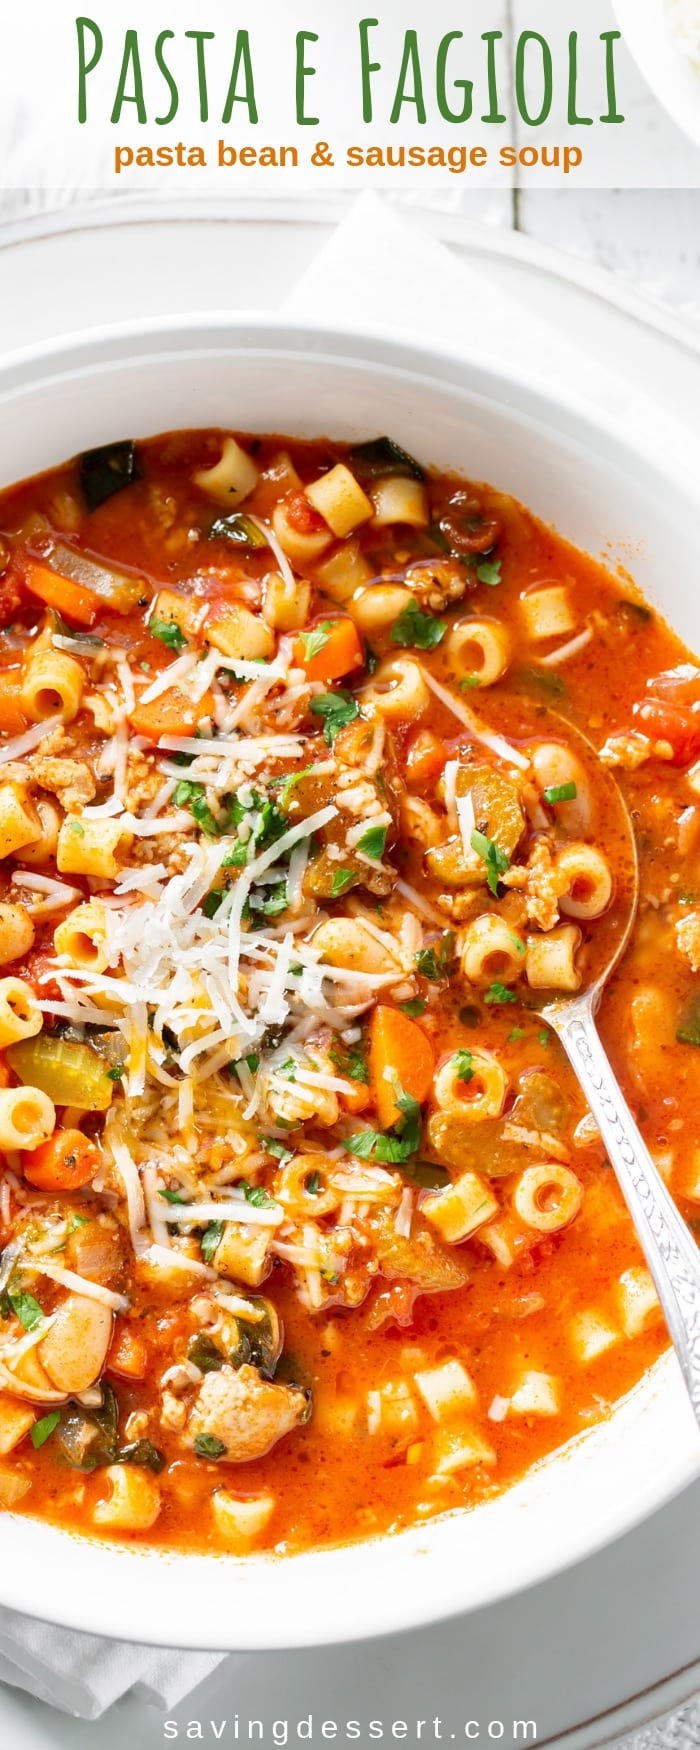 Pasta e Fagioli is a deliciously hearty, stew-like soup loaded with pasta, beans and Italian sausage. Every bite is rich with flavor and plenty of vegetables. #savingroomfordessert #pastaefagioli #italian #italiansoup #pastasoup #pastabeansausagesoup #soup #heartysoup #healthysoup